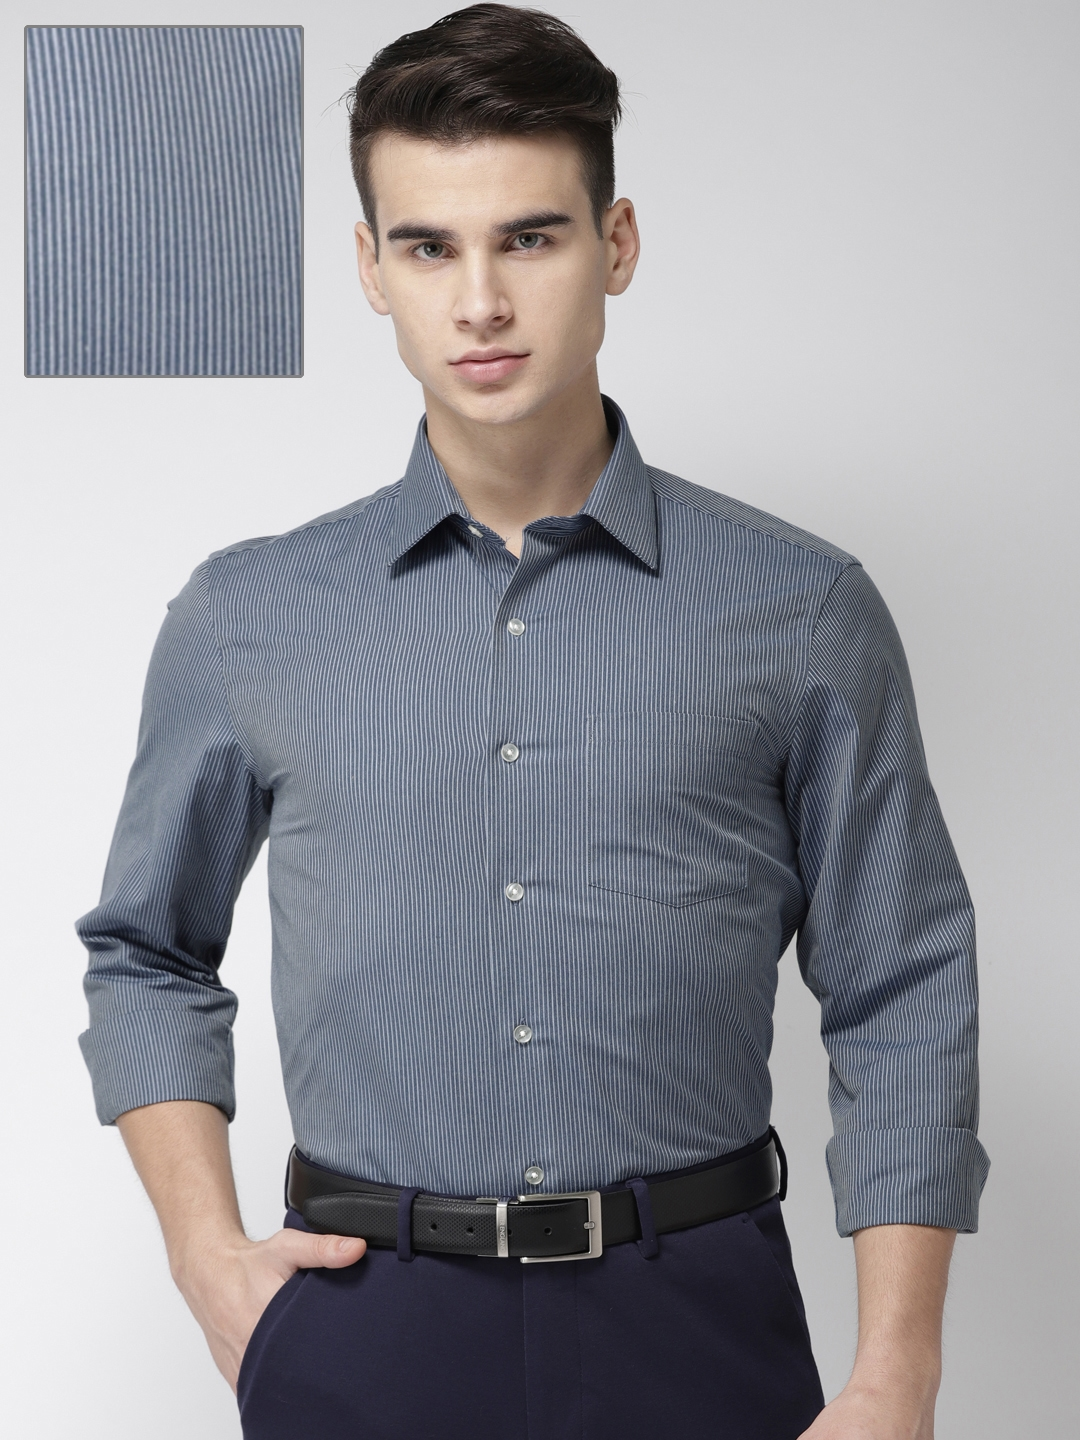 e06a54687e2 Buy Arrow Men Blue   Off White Slim Fit Striped Formal Shirt ...